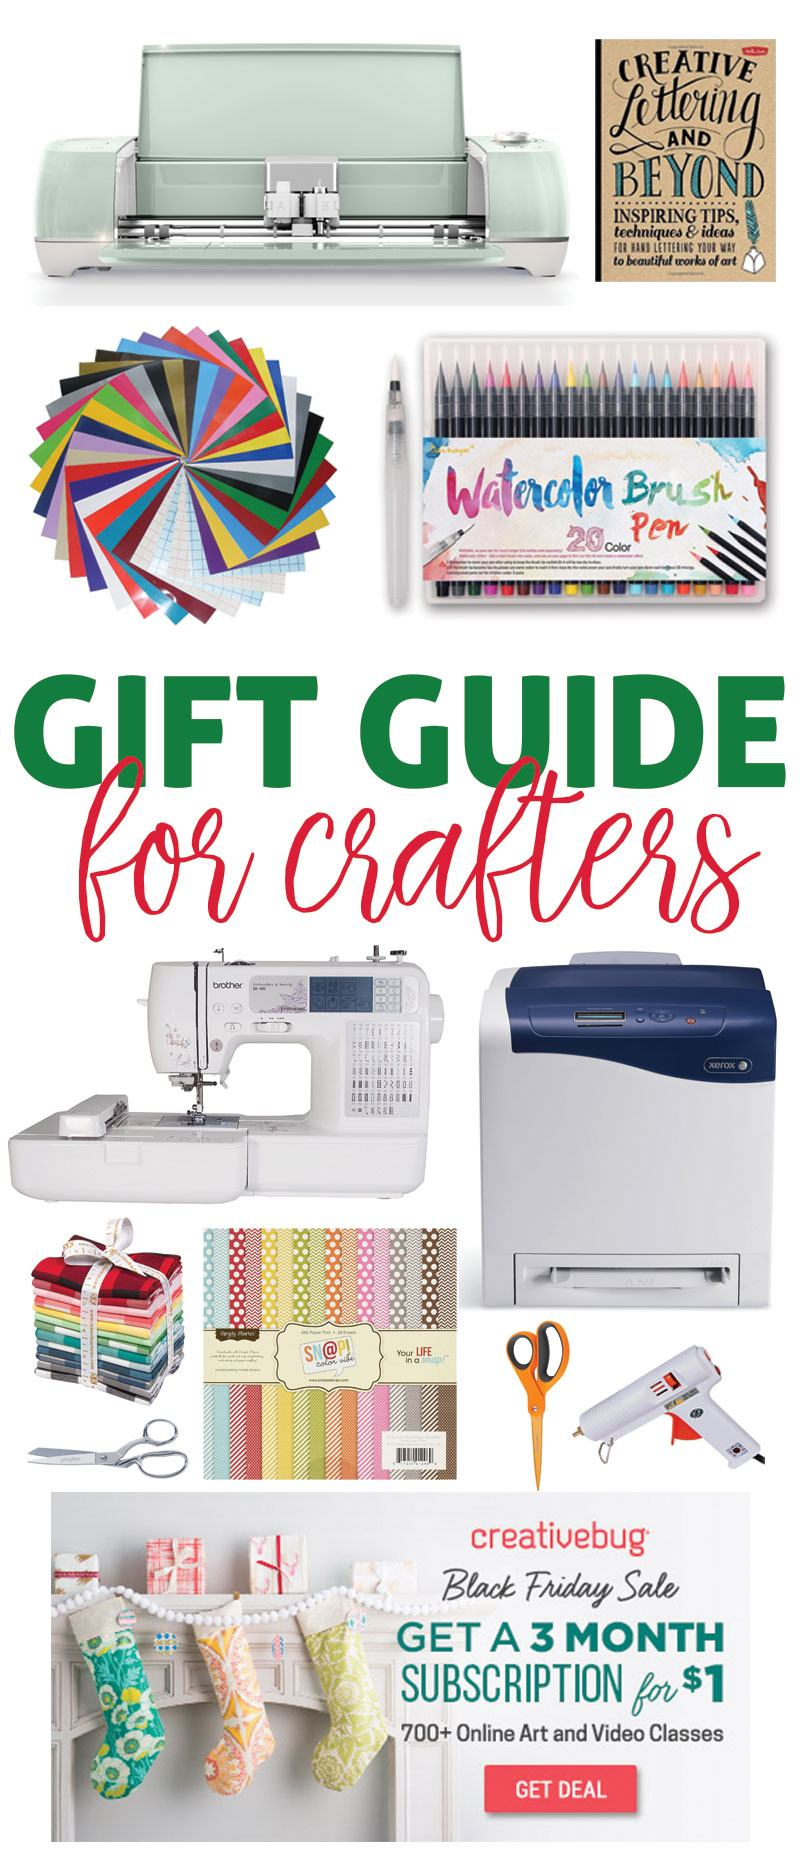 The 12 Best Gifts for Crafters by Lindi Haws of Love The Day